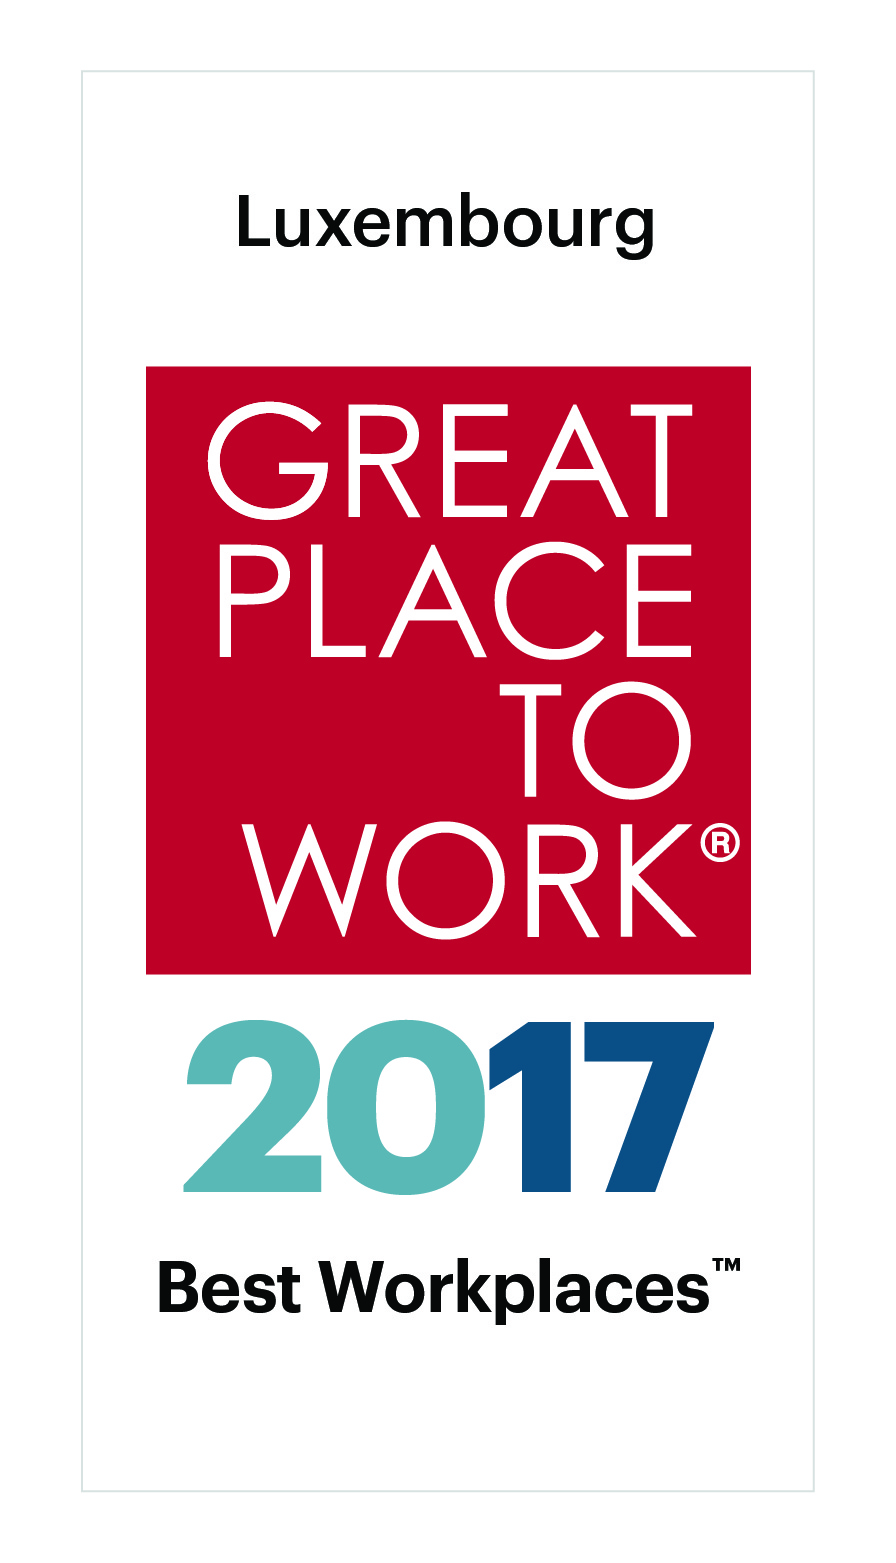 ALD Automotive nommée Best Workplace 2017